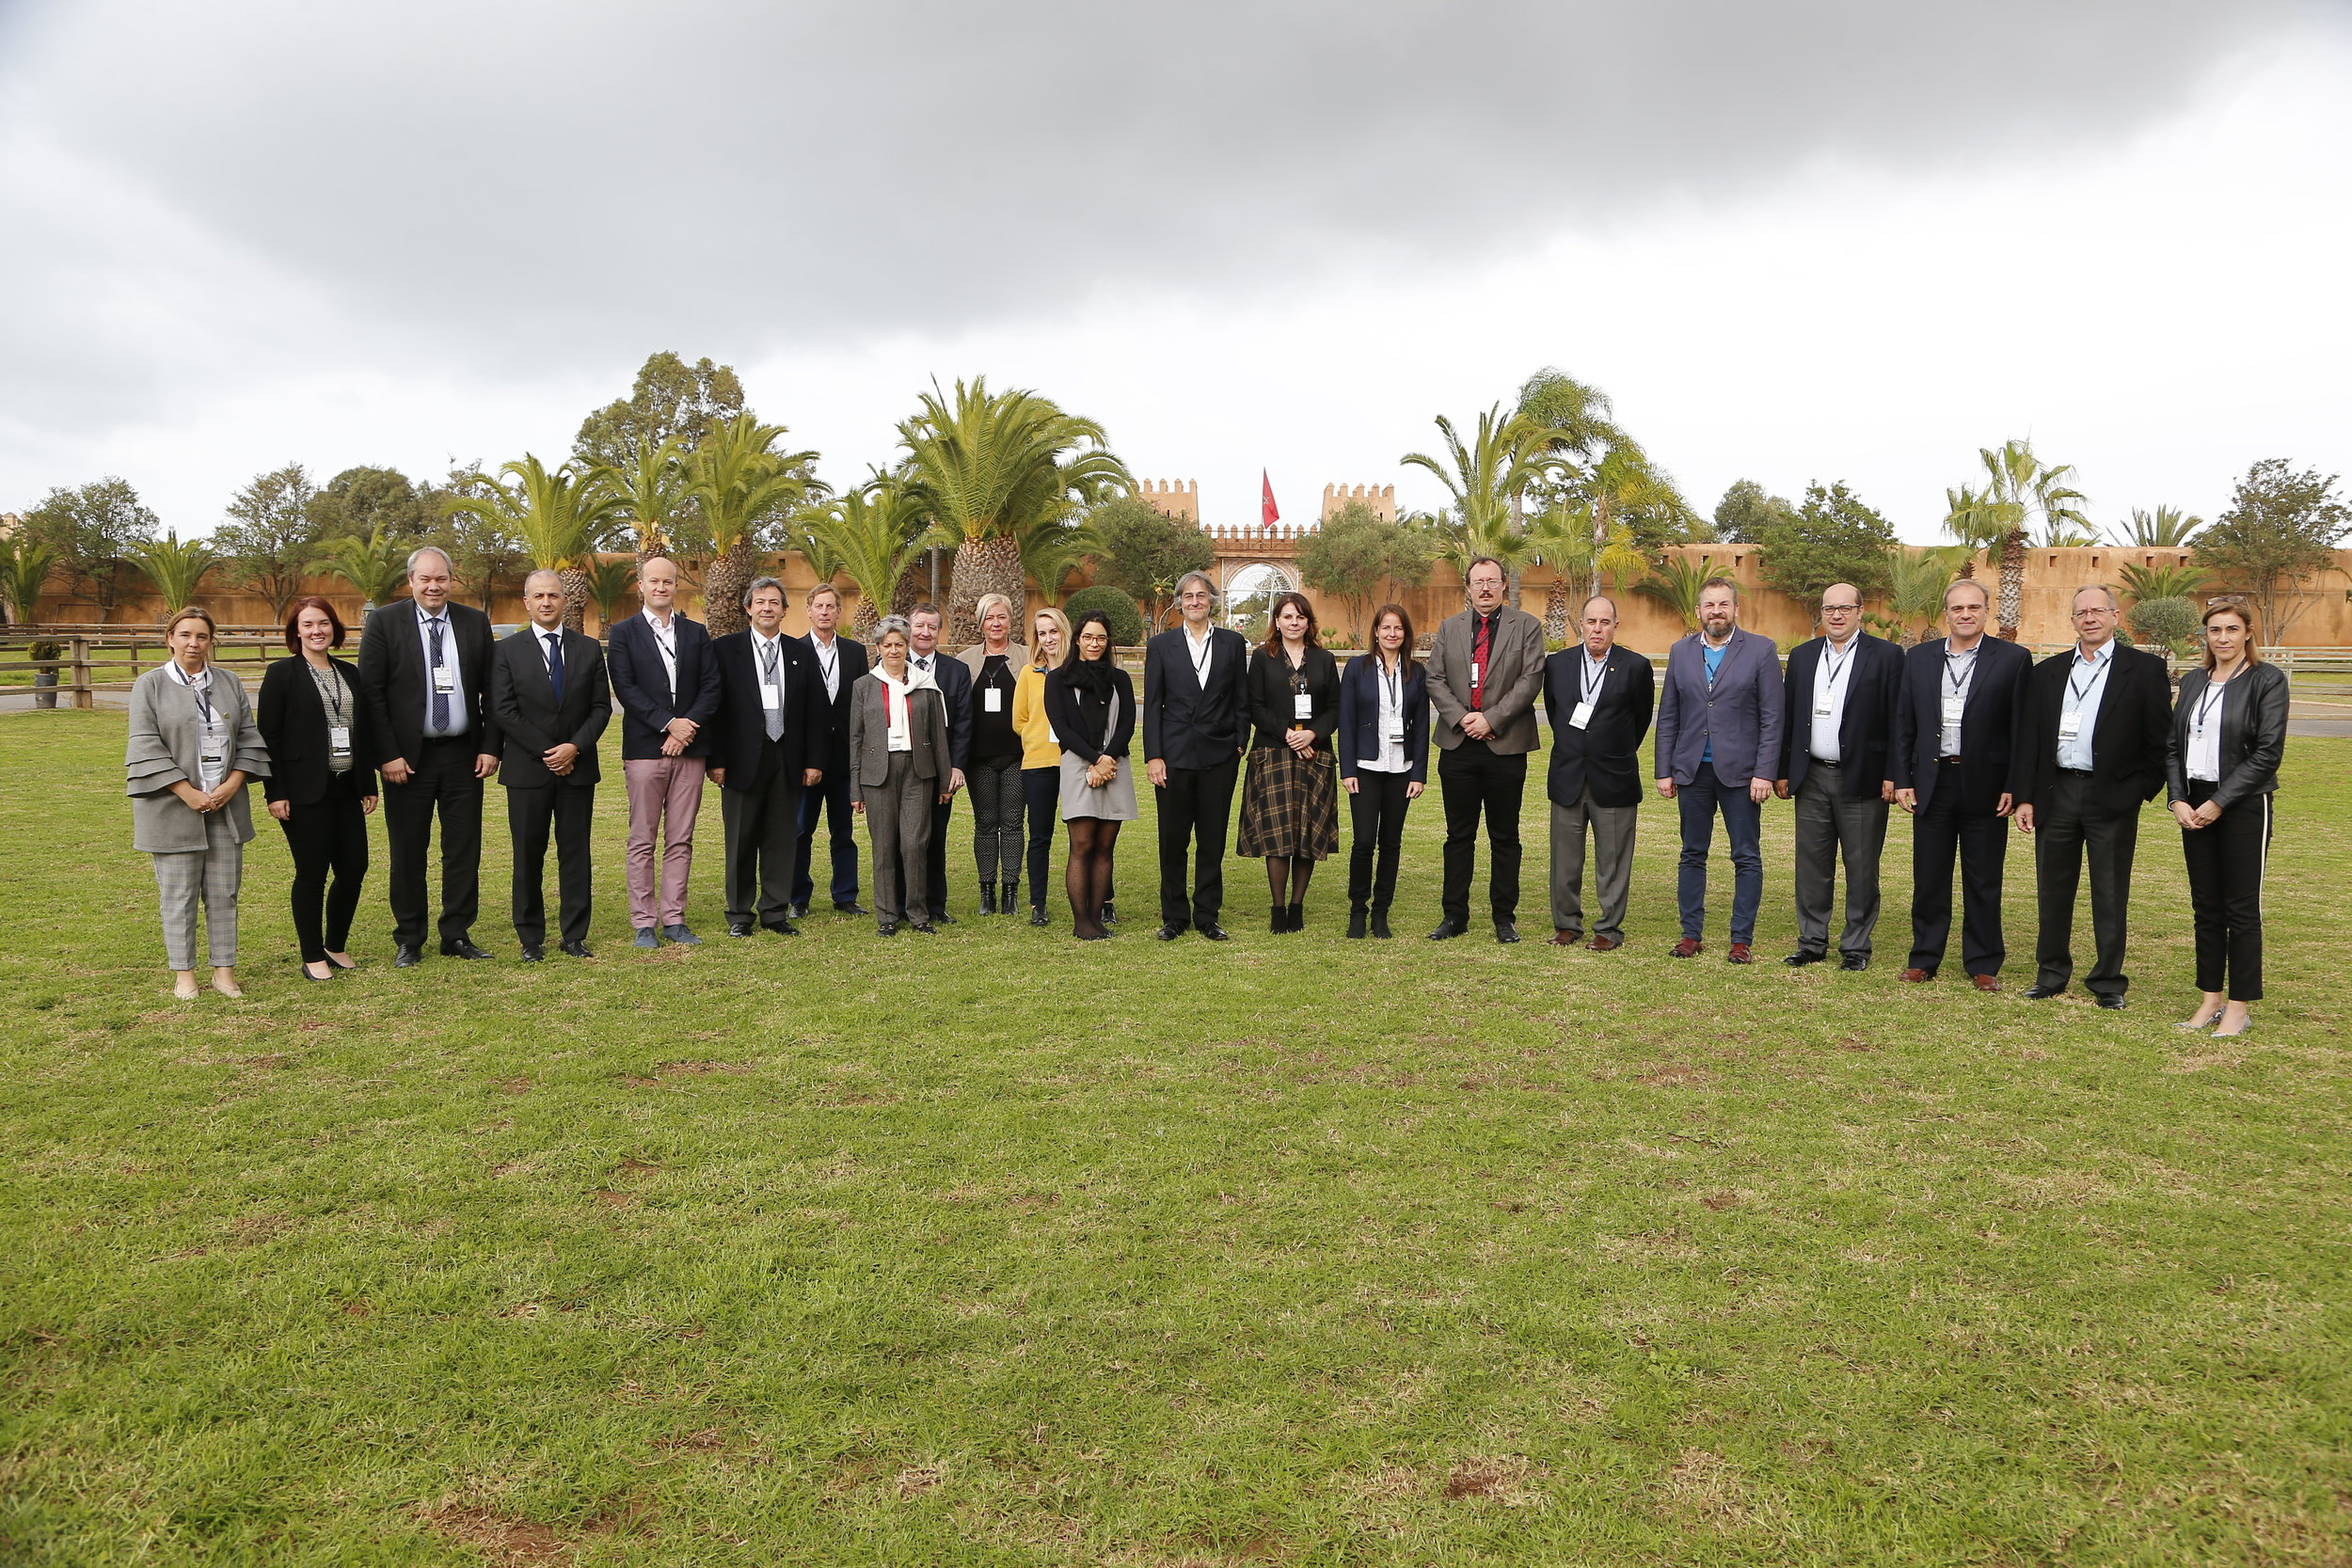 22 delegates from 10 countries attend the EMHF's Marketing & Educational Initiatives Seminar